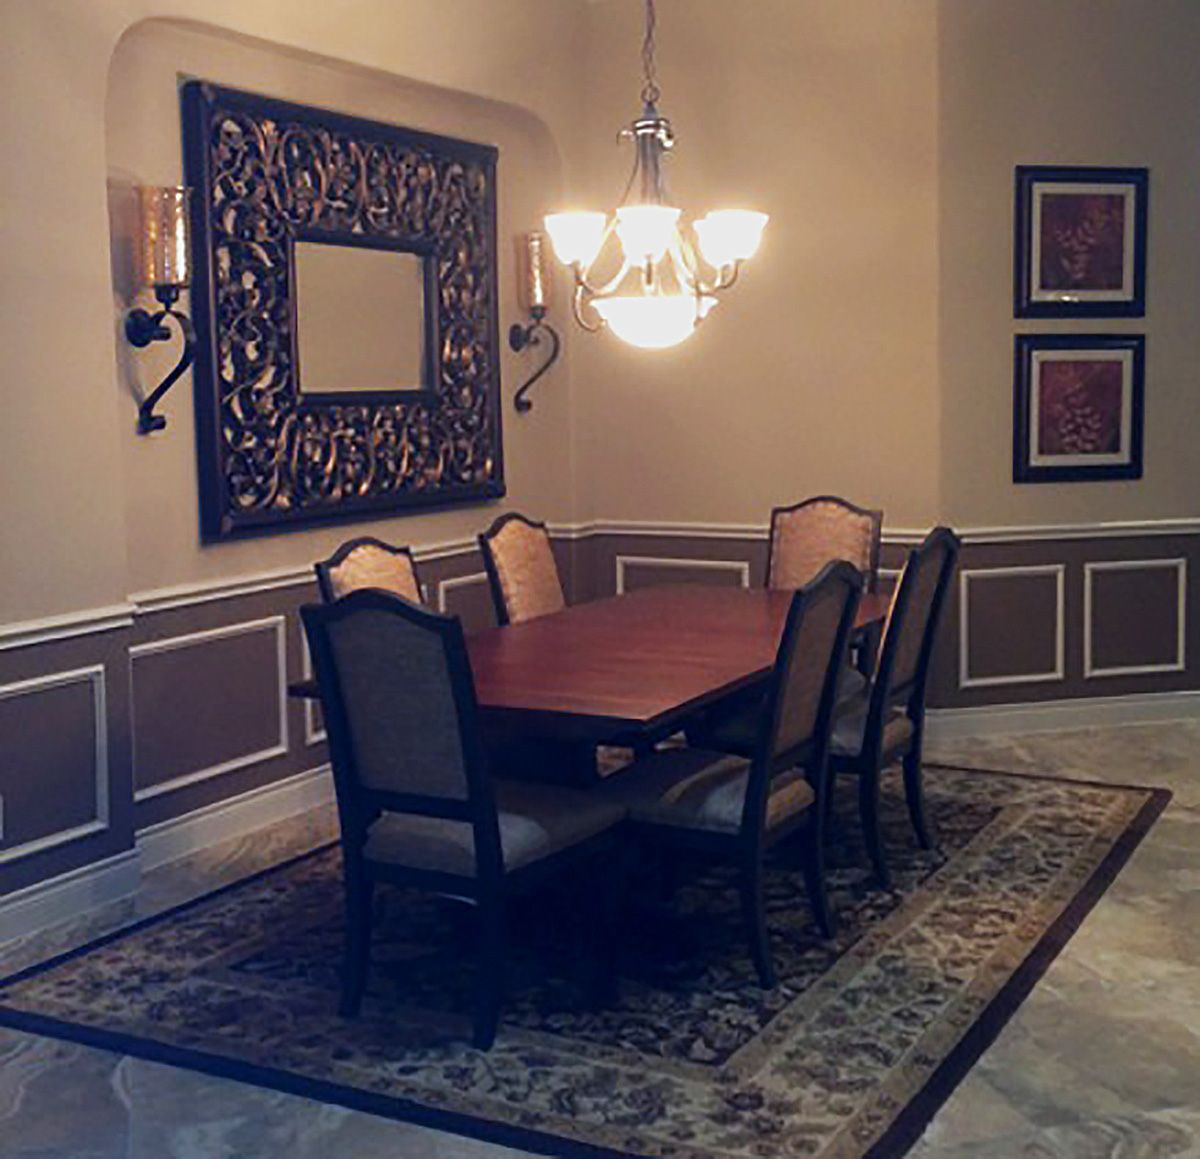 Dining Room And Interior Design By Lucia Gentry Of Star Furniture, Webster,  TX.